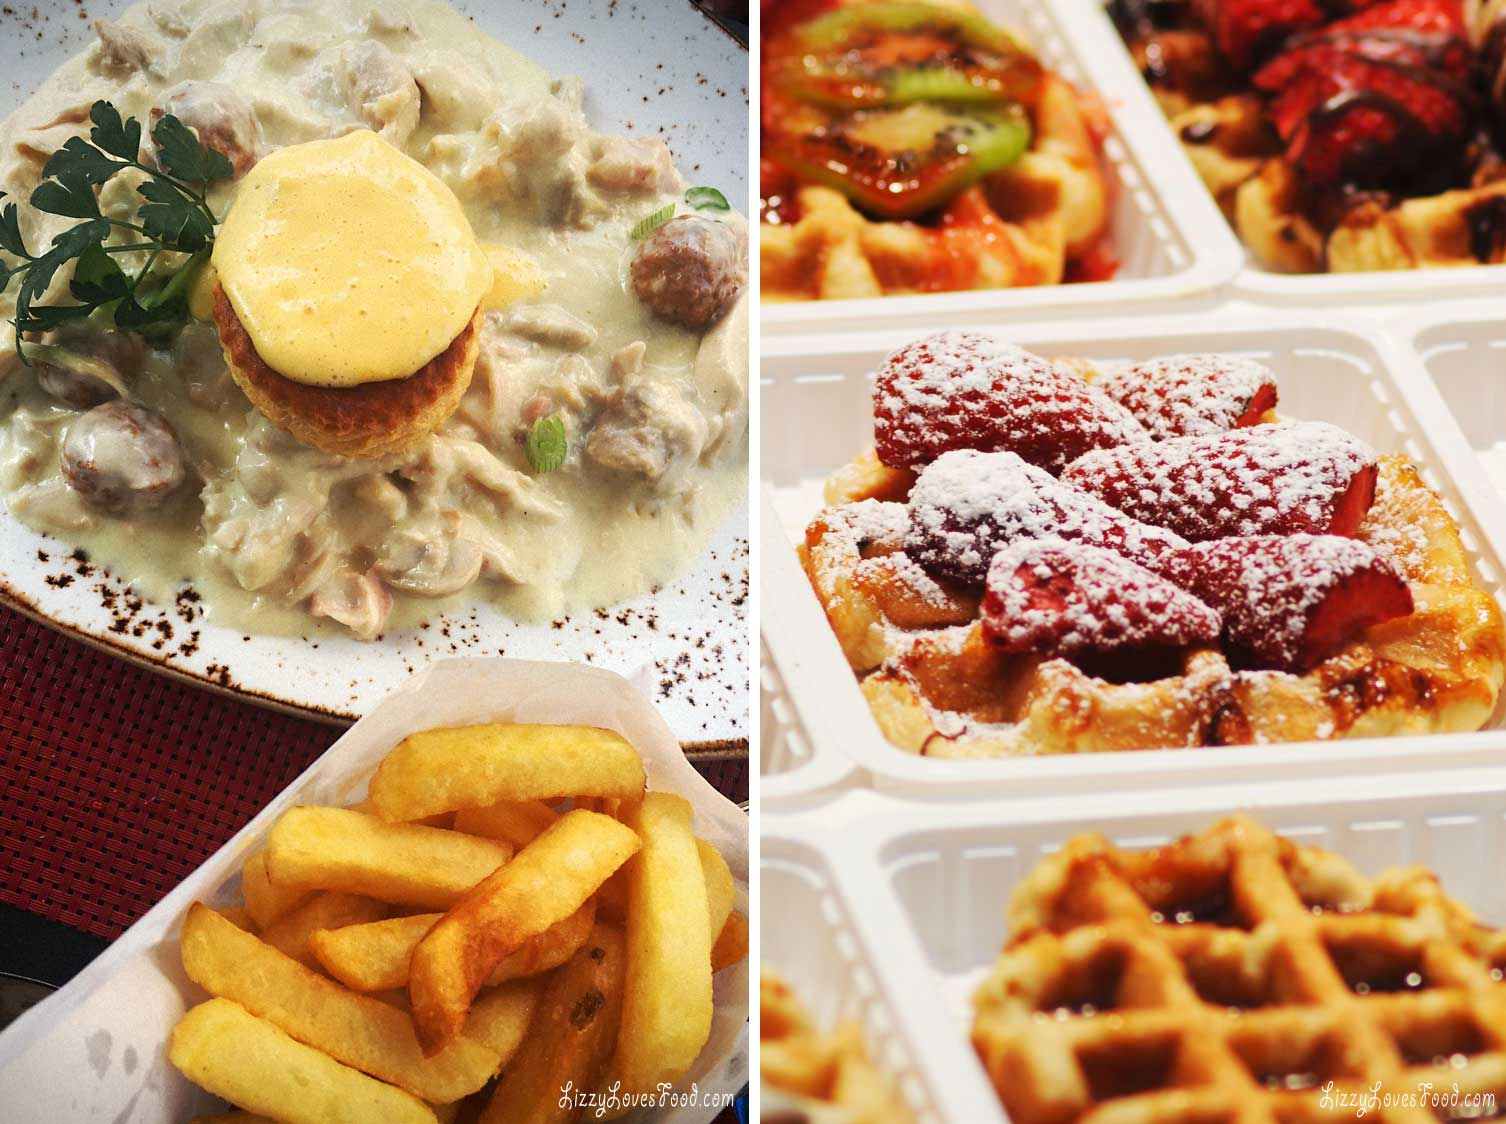 Waffles and fries